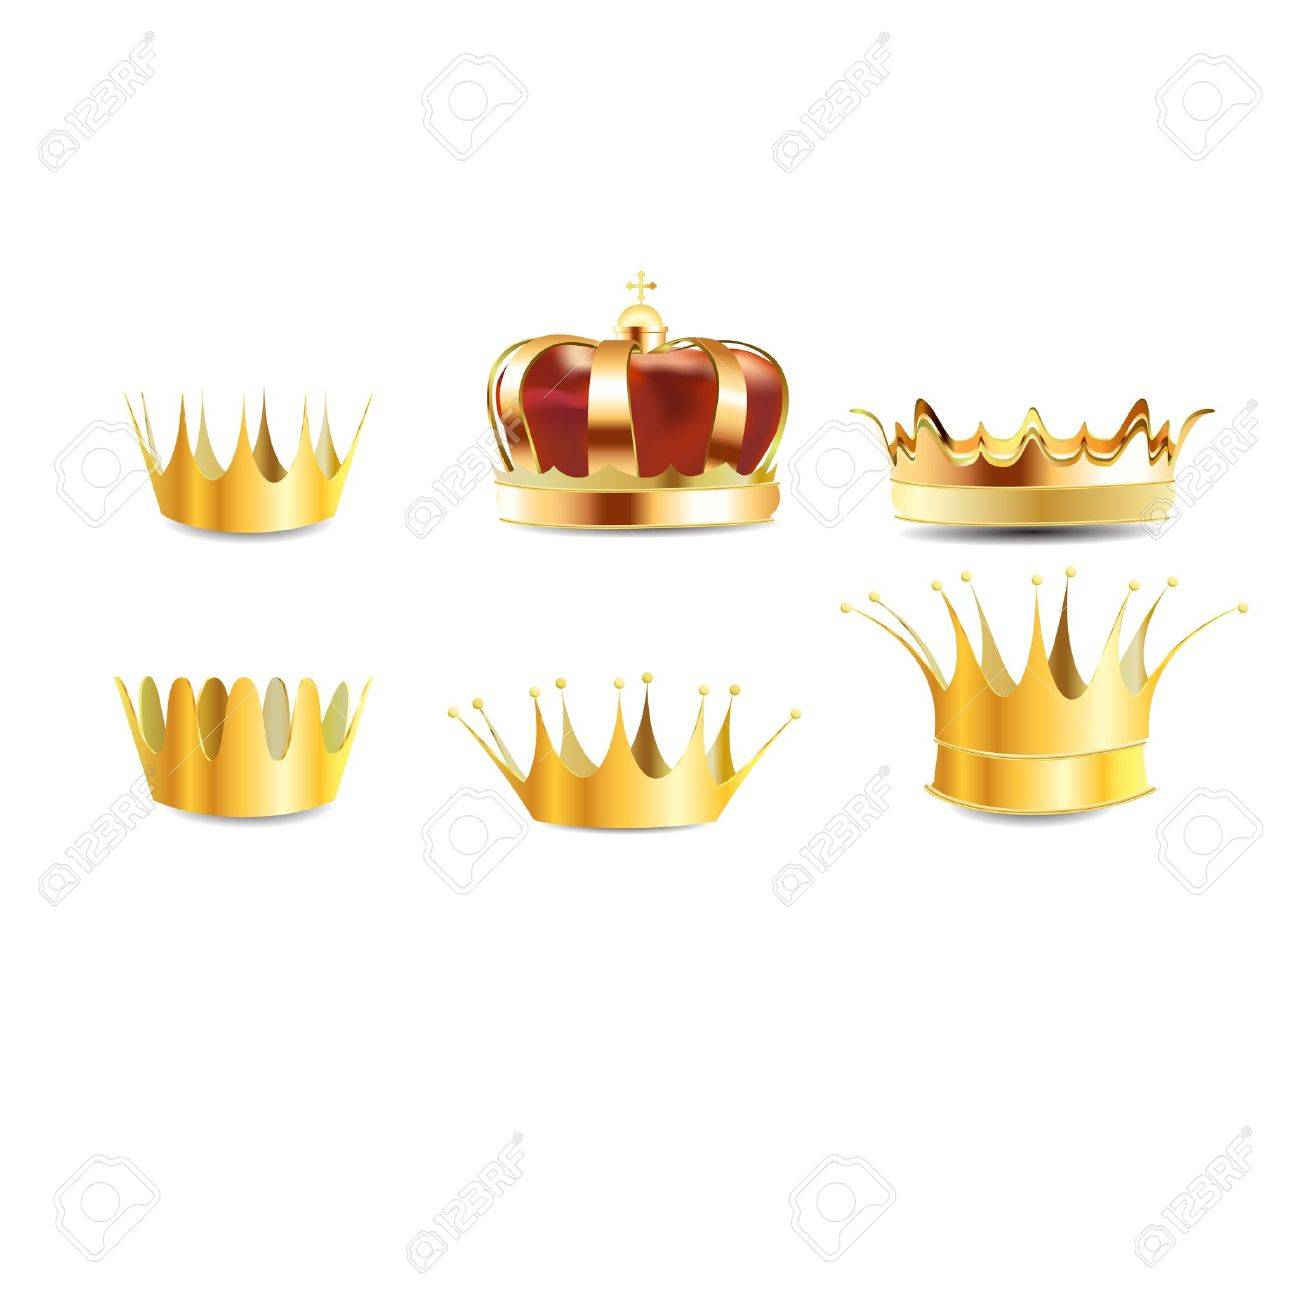 realistic gold heraldic crown embedded or coronet graphic - 22858939